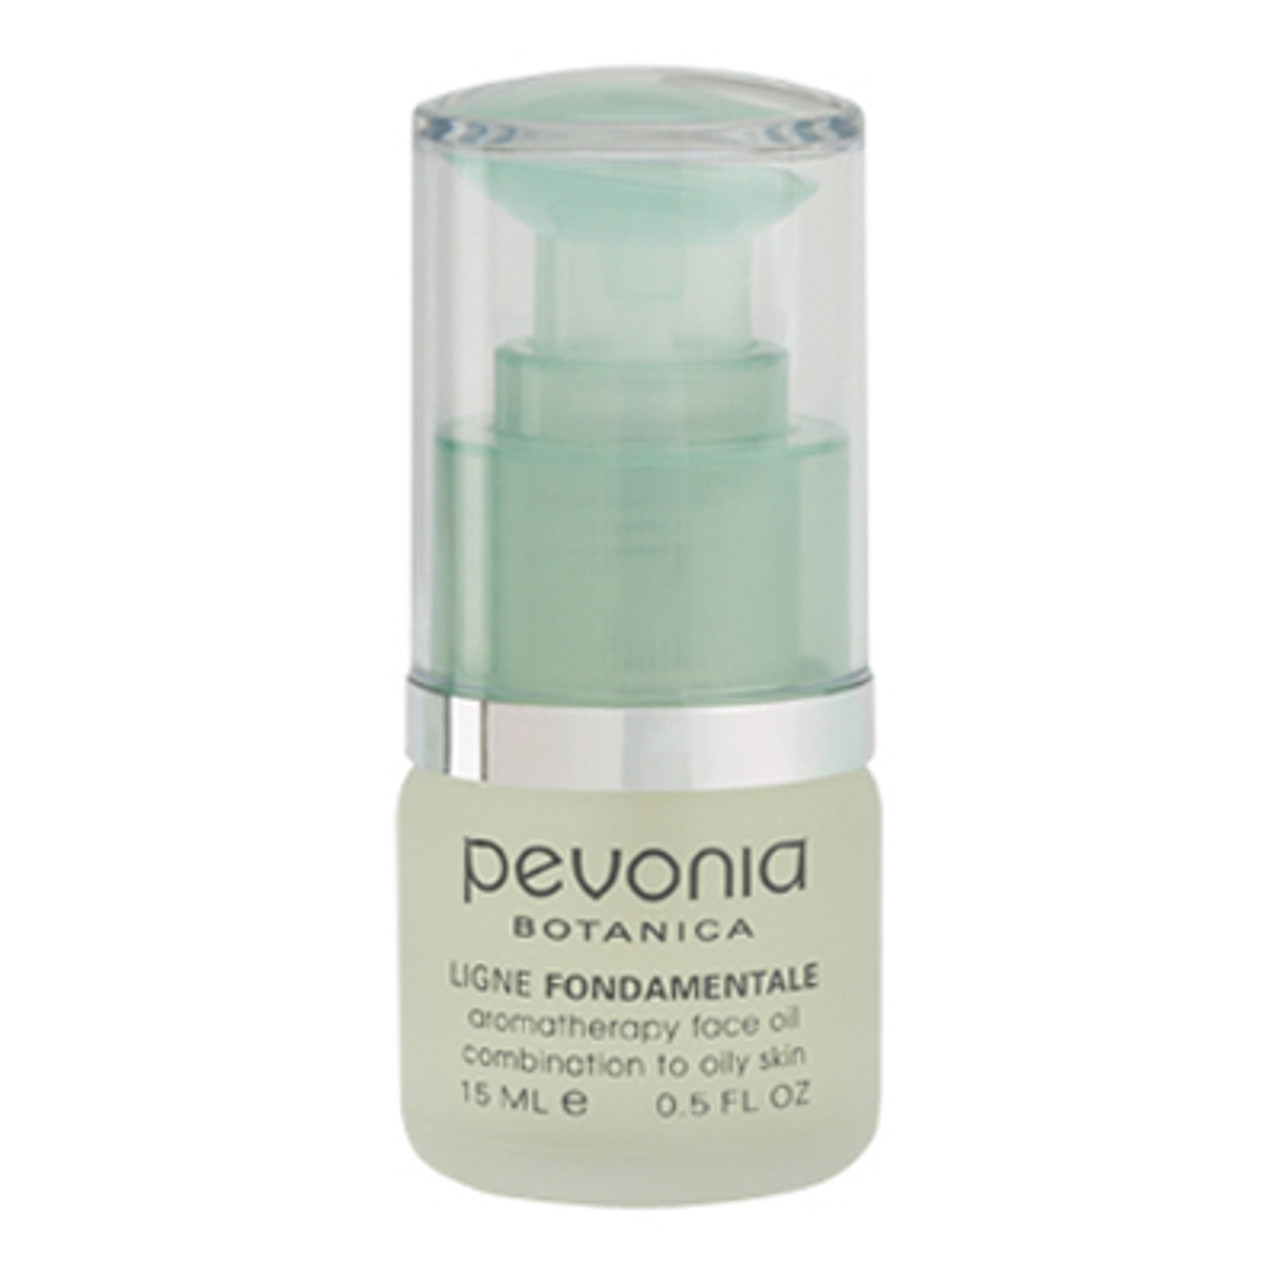 X Pevonia Aromatherapy Face Oil - Combination to Oily Skin Discontinued